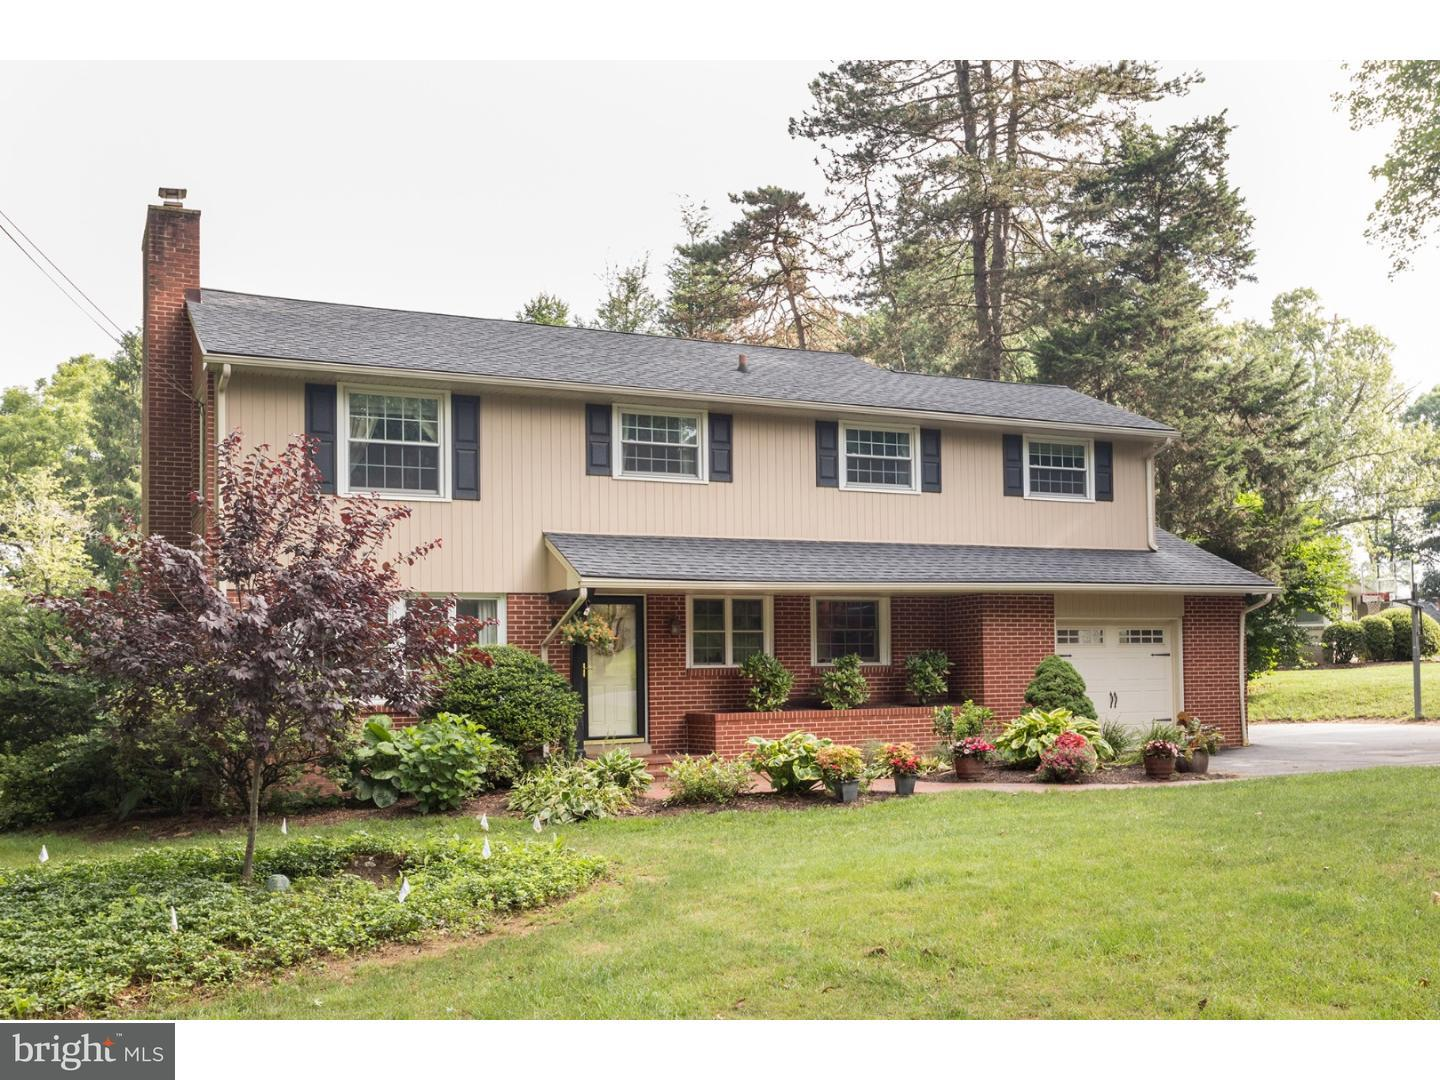 409 Locust Ln N West Chester Boro, PA 19380